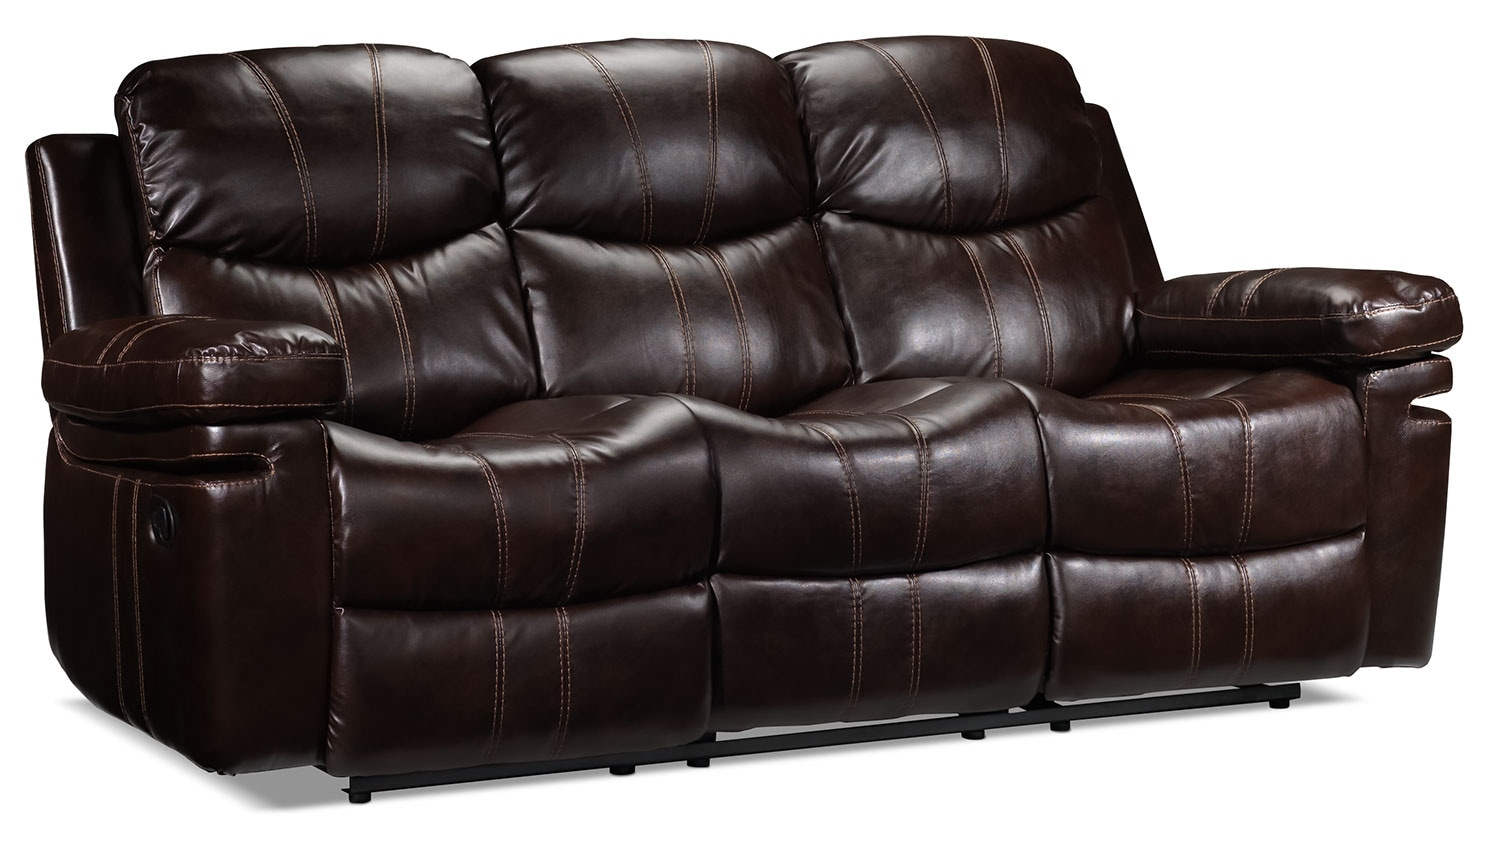 Barcelona Reclining Sofa - Brown